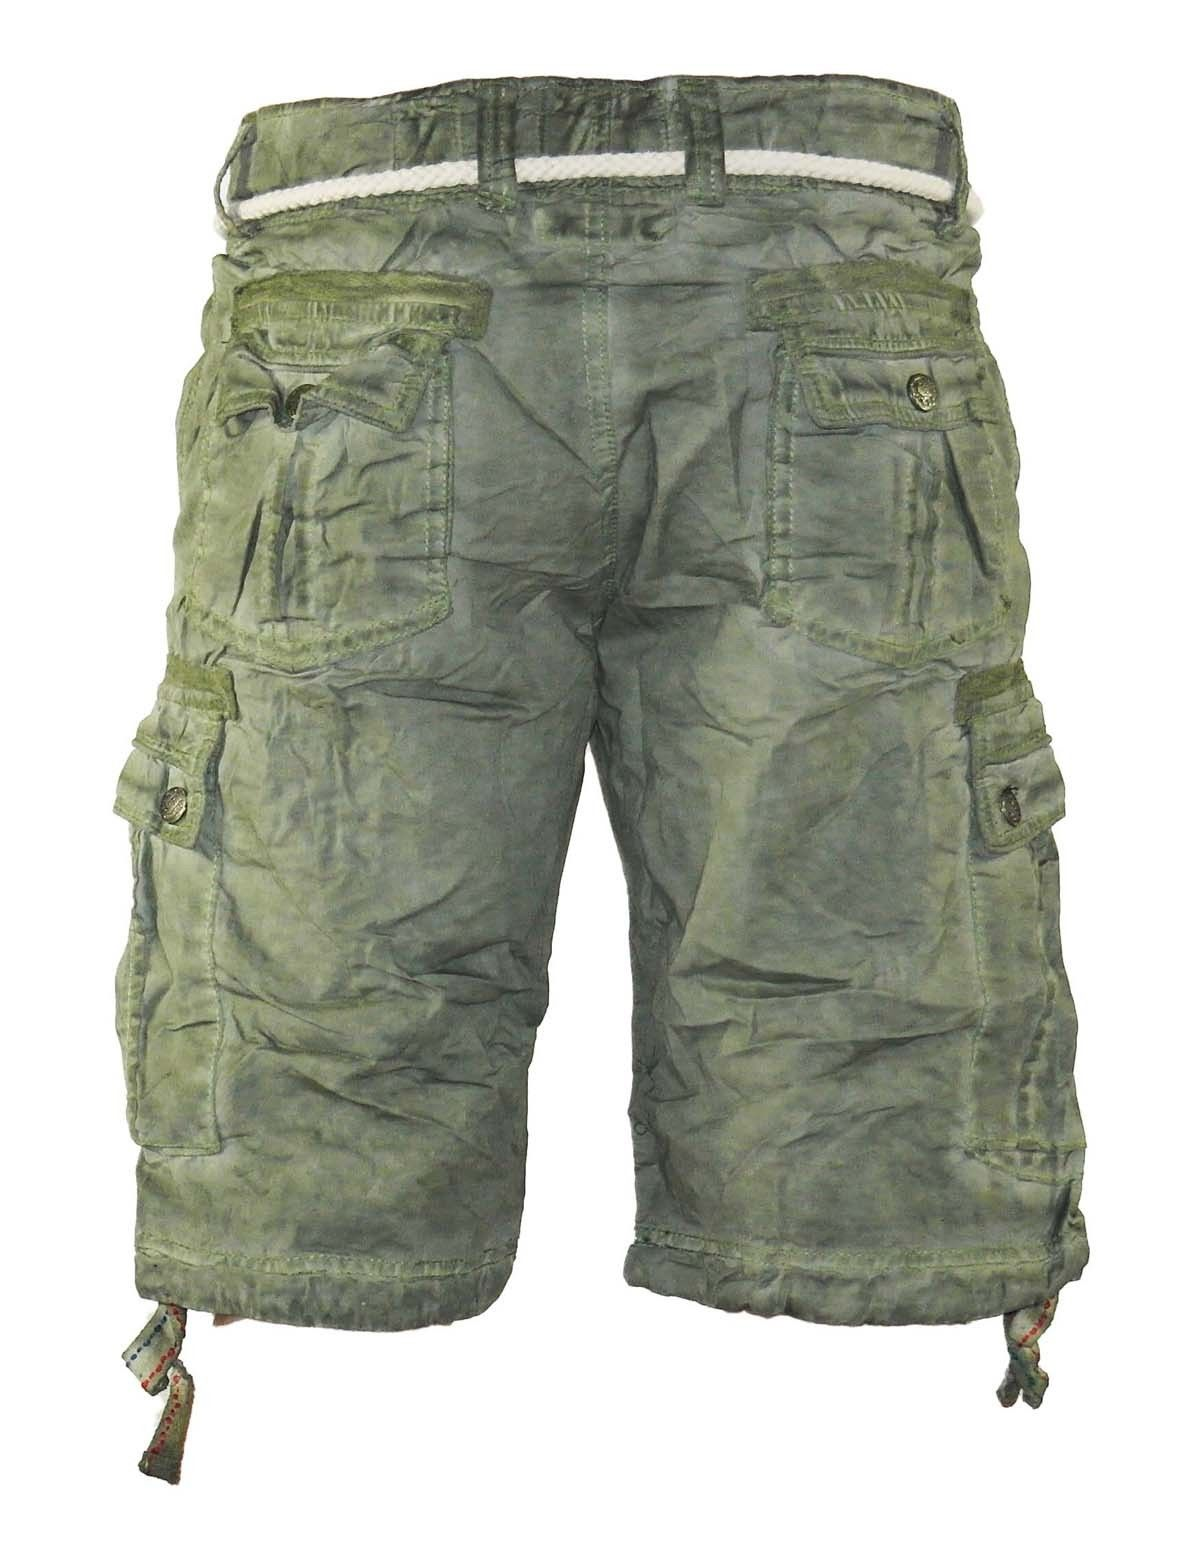 herren jeans kurze hose lange cargo shorts bermuda caprihose mit g rtel 8835 kaufen bei yesetshop. Black Bedroom Furniture Sets. Home Design Ideas